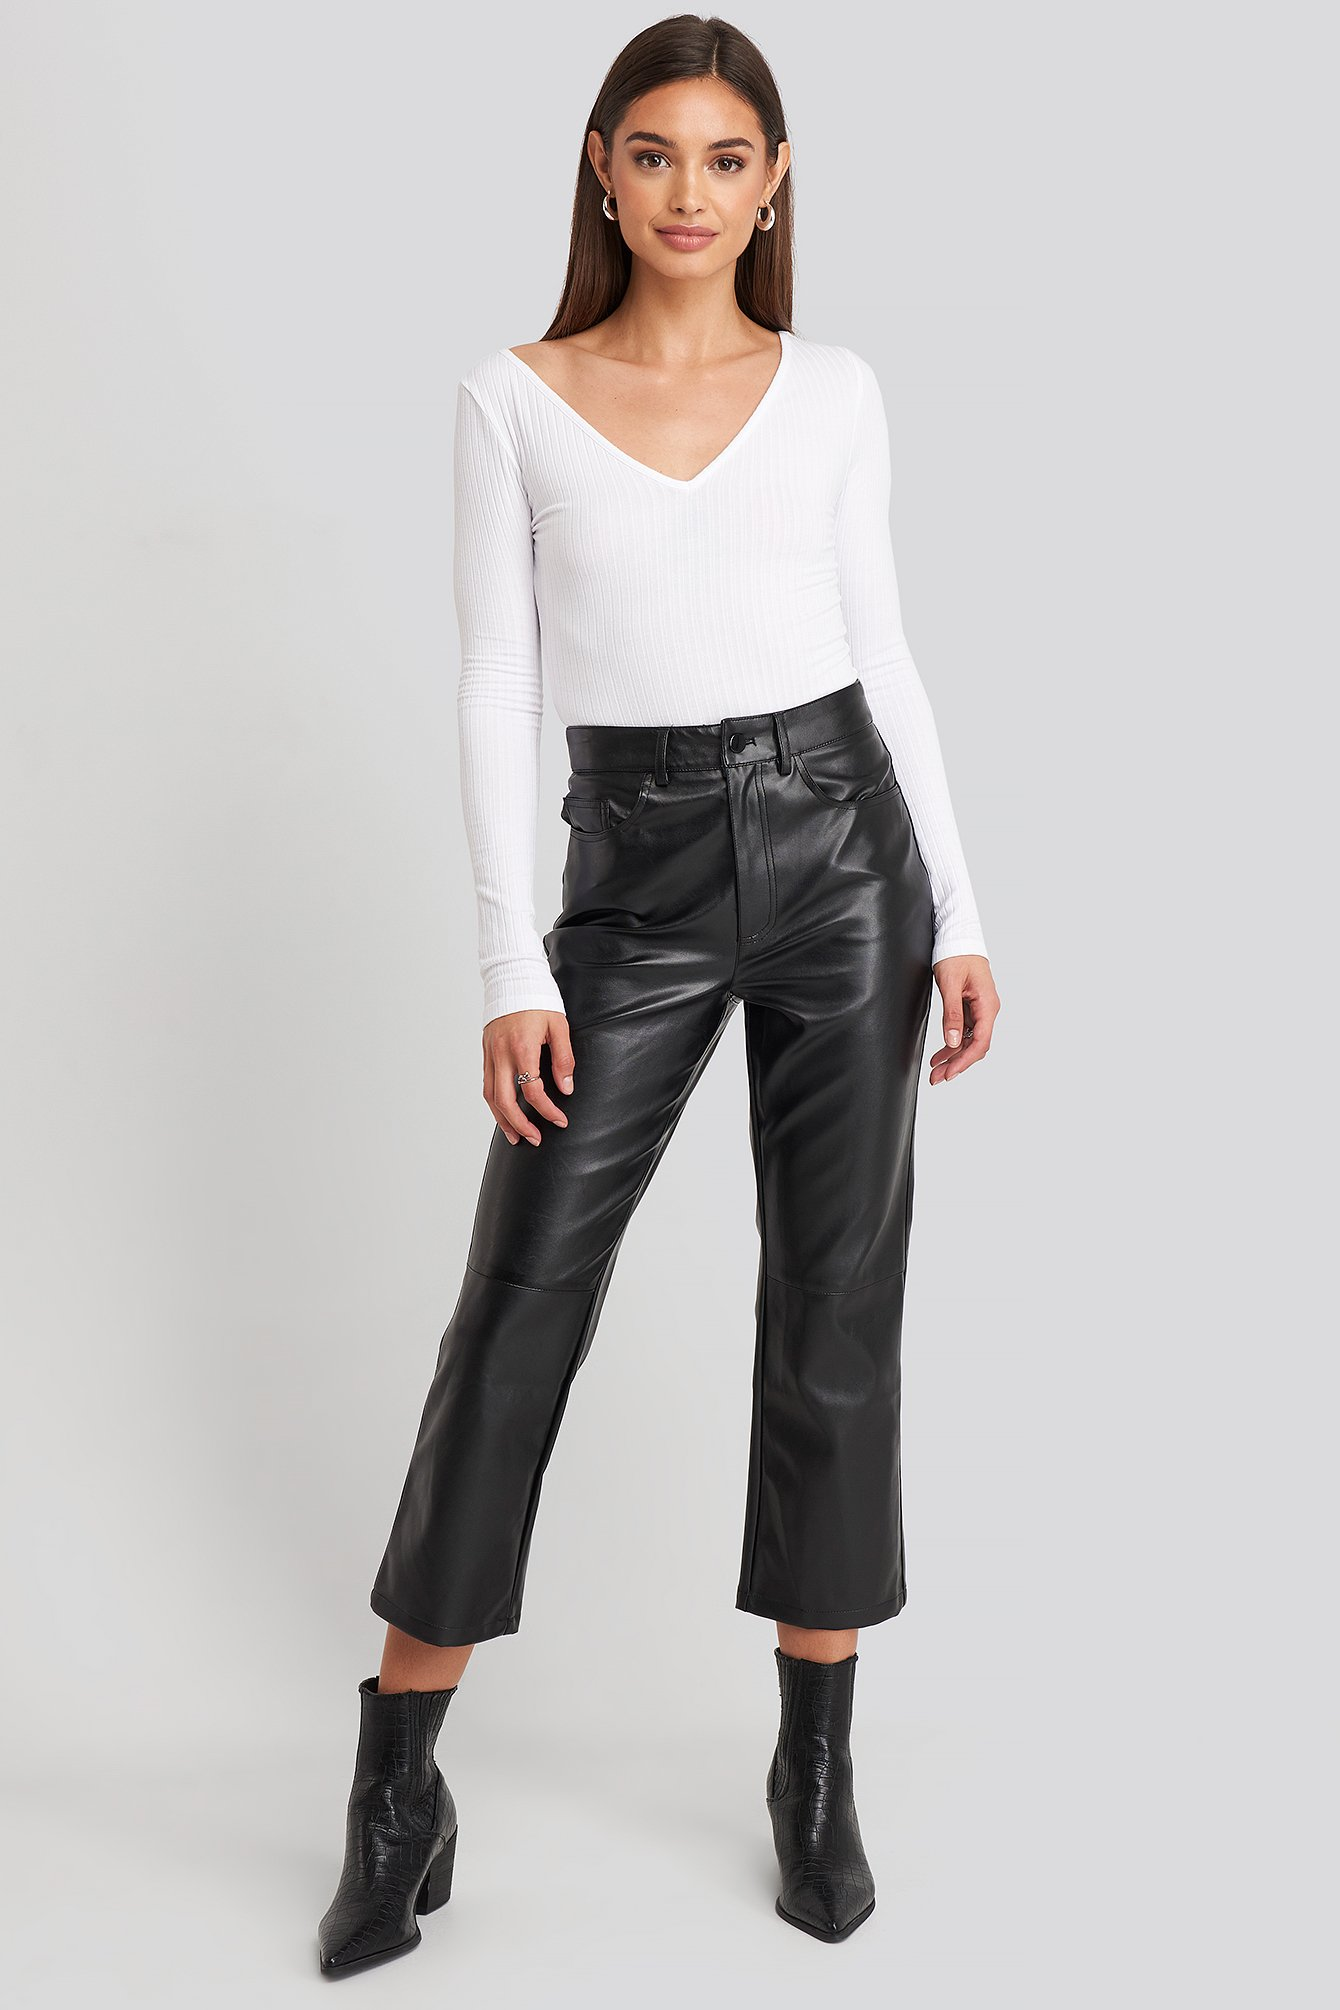 Flared Cropped Pu Pants Sort by Na Kd Trend